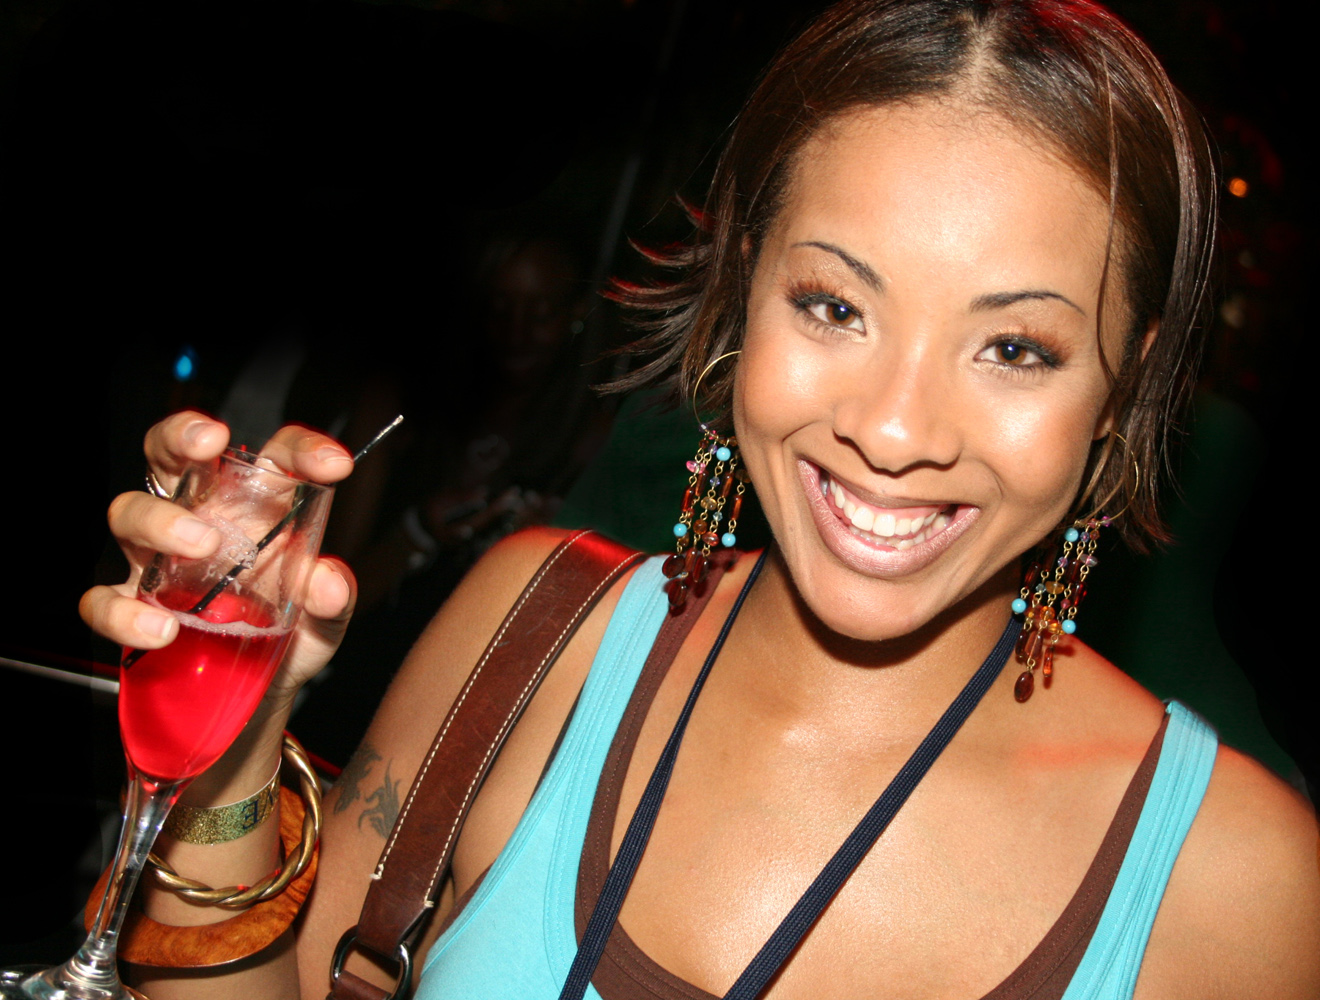 hot black girl drinking clubbing 1000